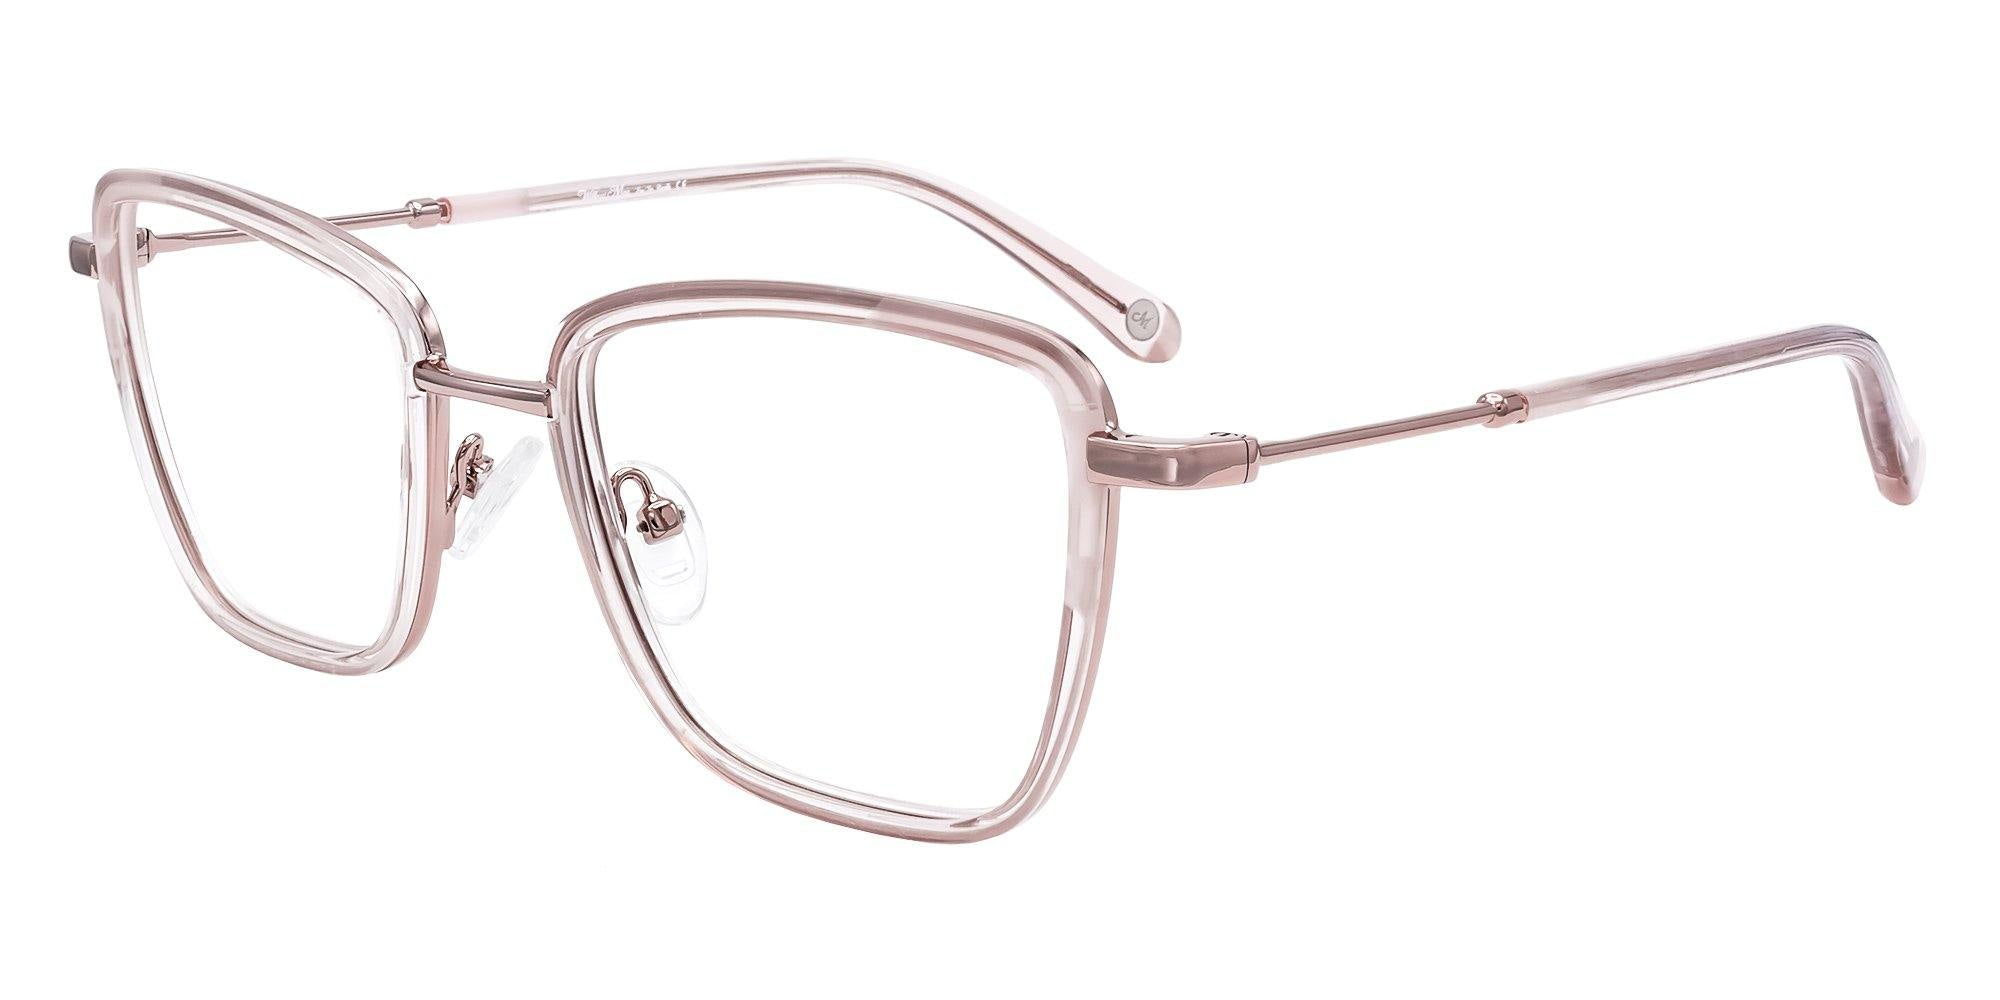 SHANA - Willow Mae Eyewear